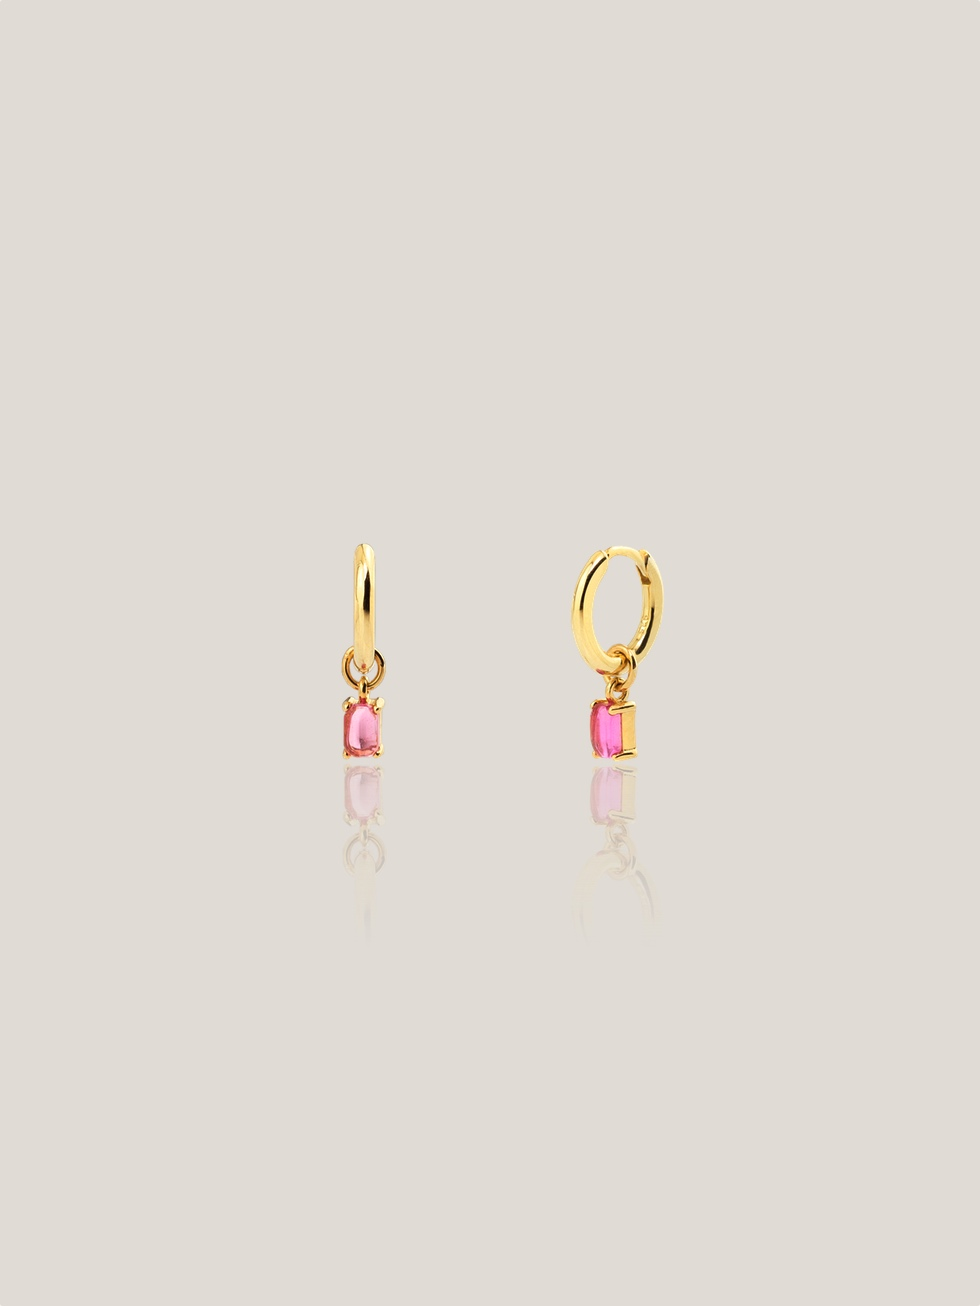 PINK LILY gold hoops earrings